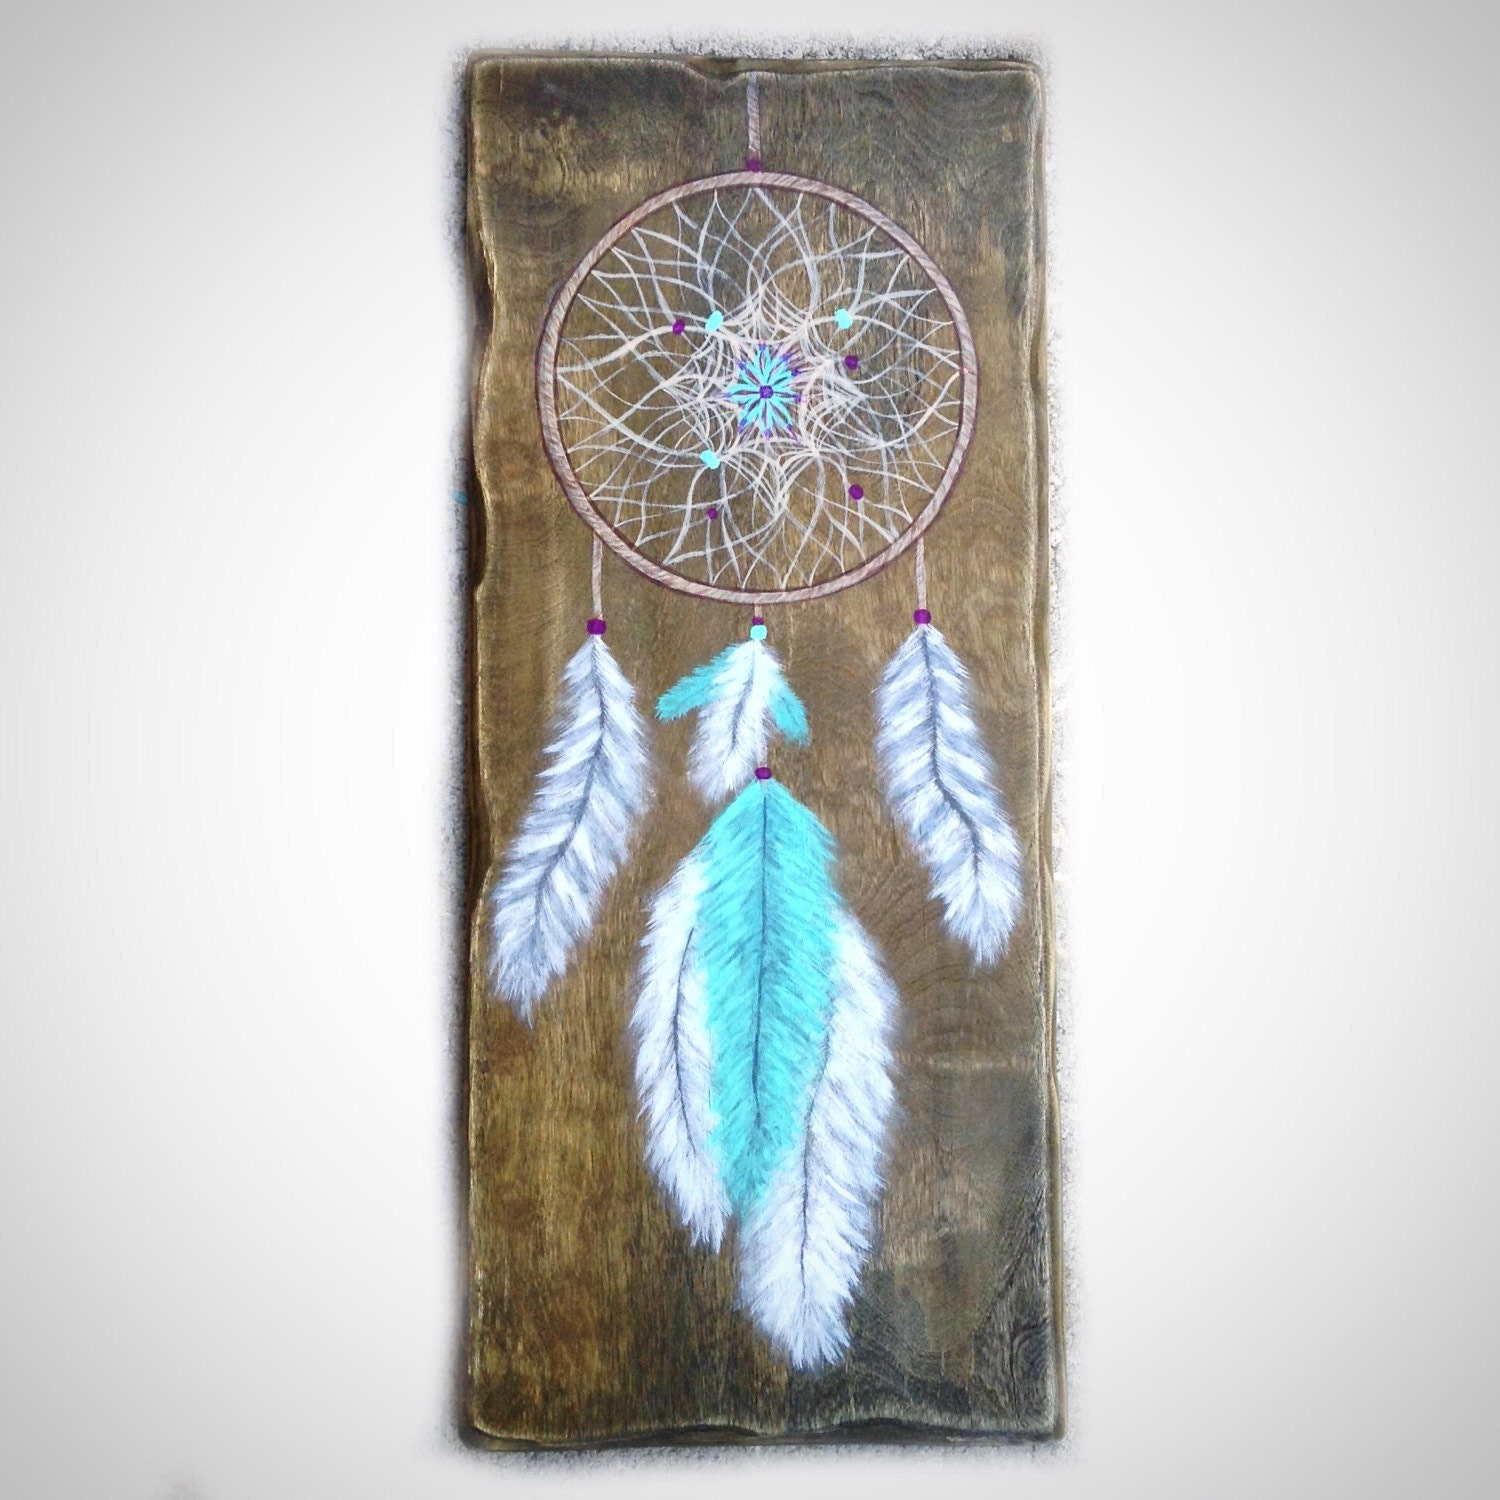 Dream catcher southwestern decor bohemian wall art for Decor dreams